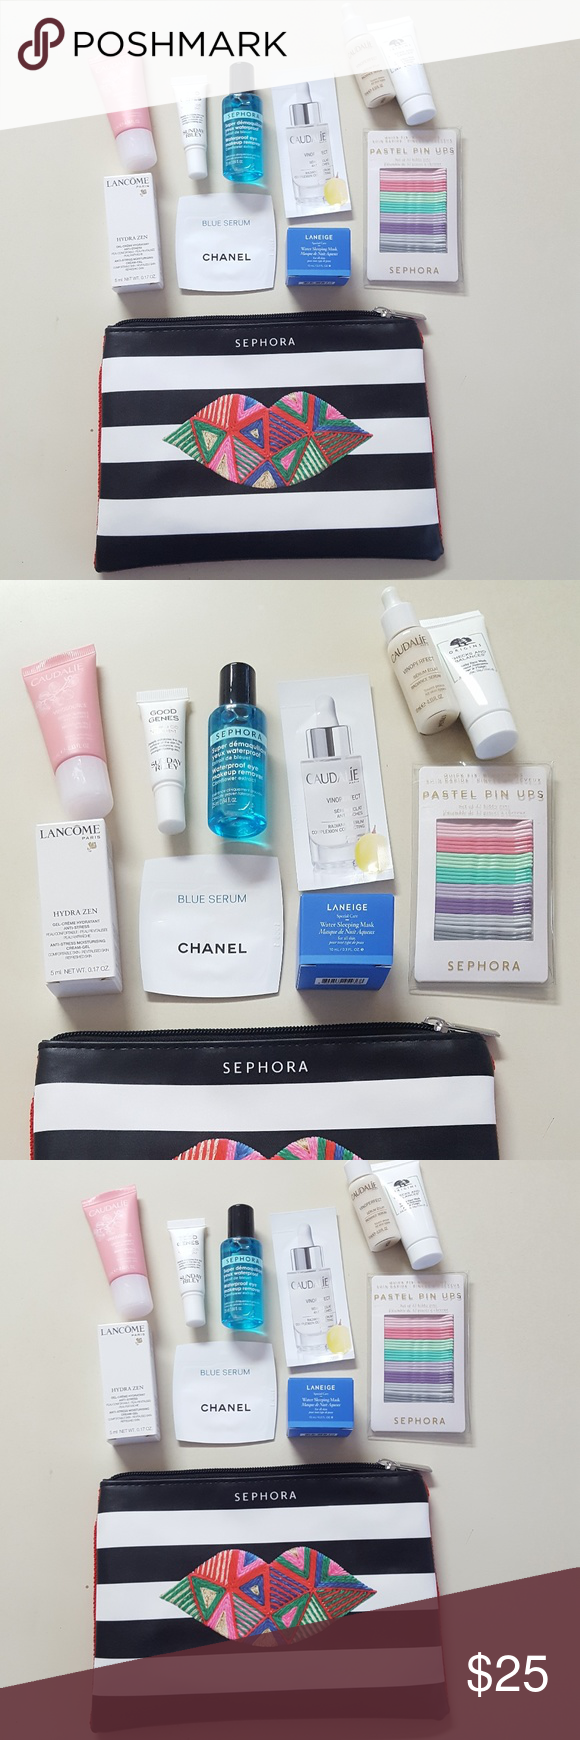 x11 Piece Sephora Makeup Skin Care Bundle Skin makeup